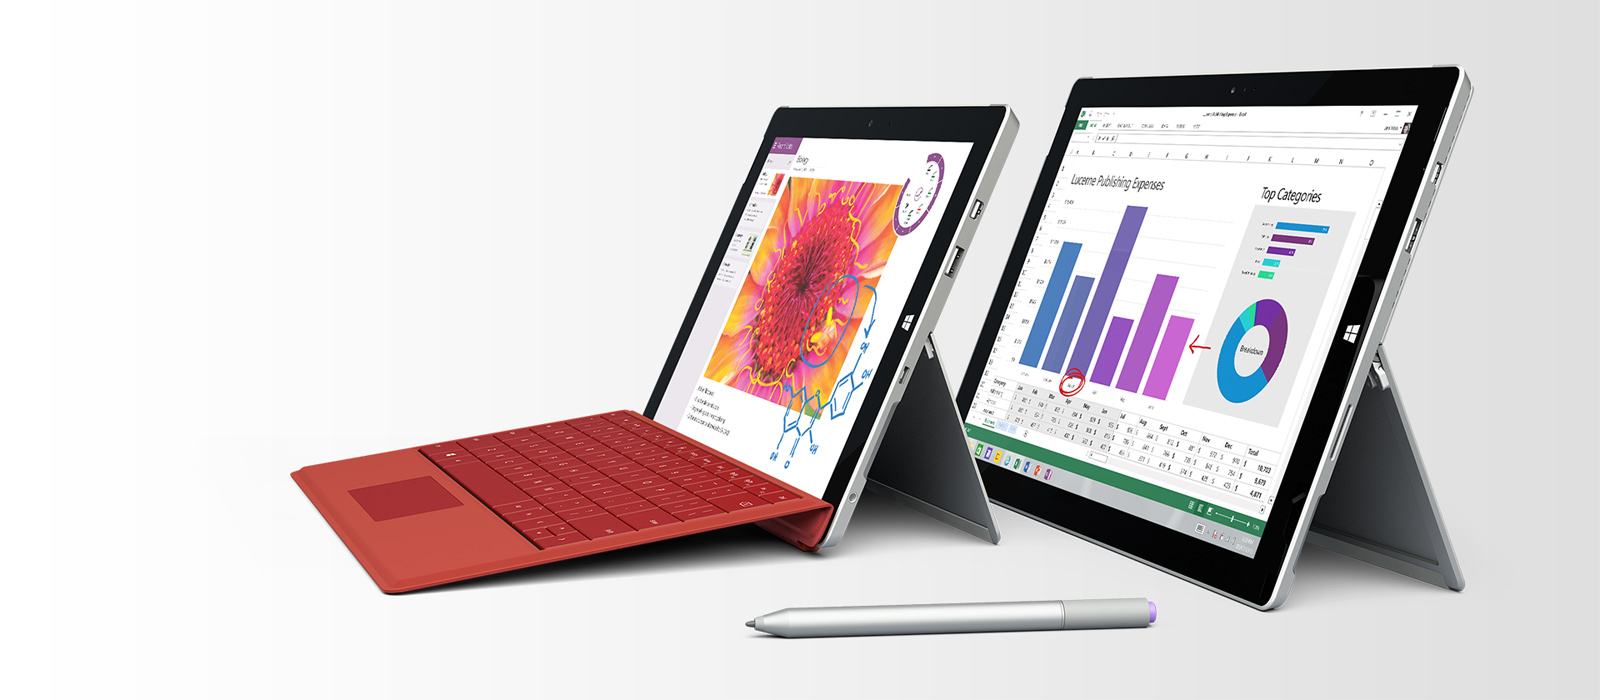 Surface Pro 4 Has Been officially Announced – See The Groundbreaking Specs Here